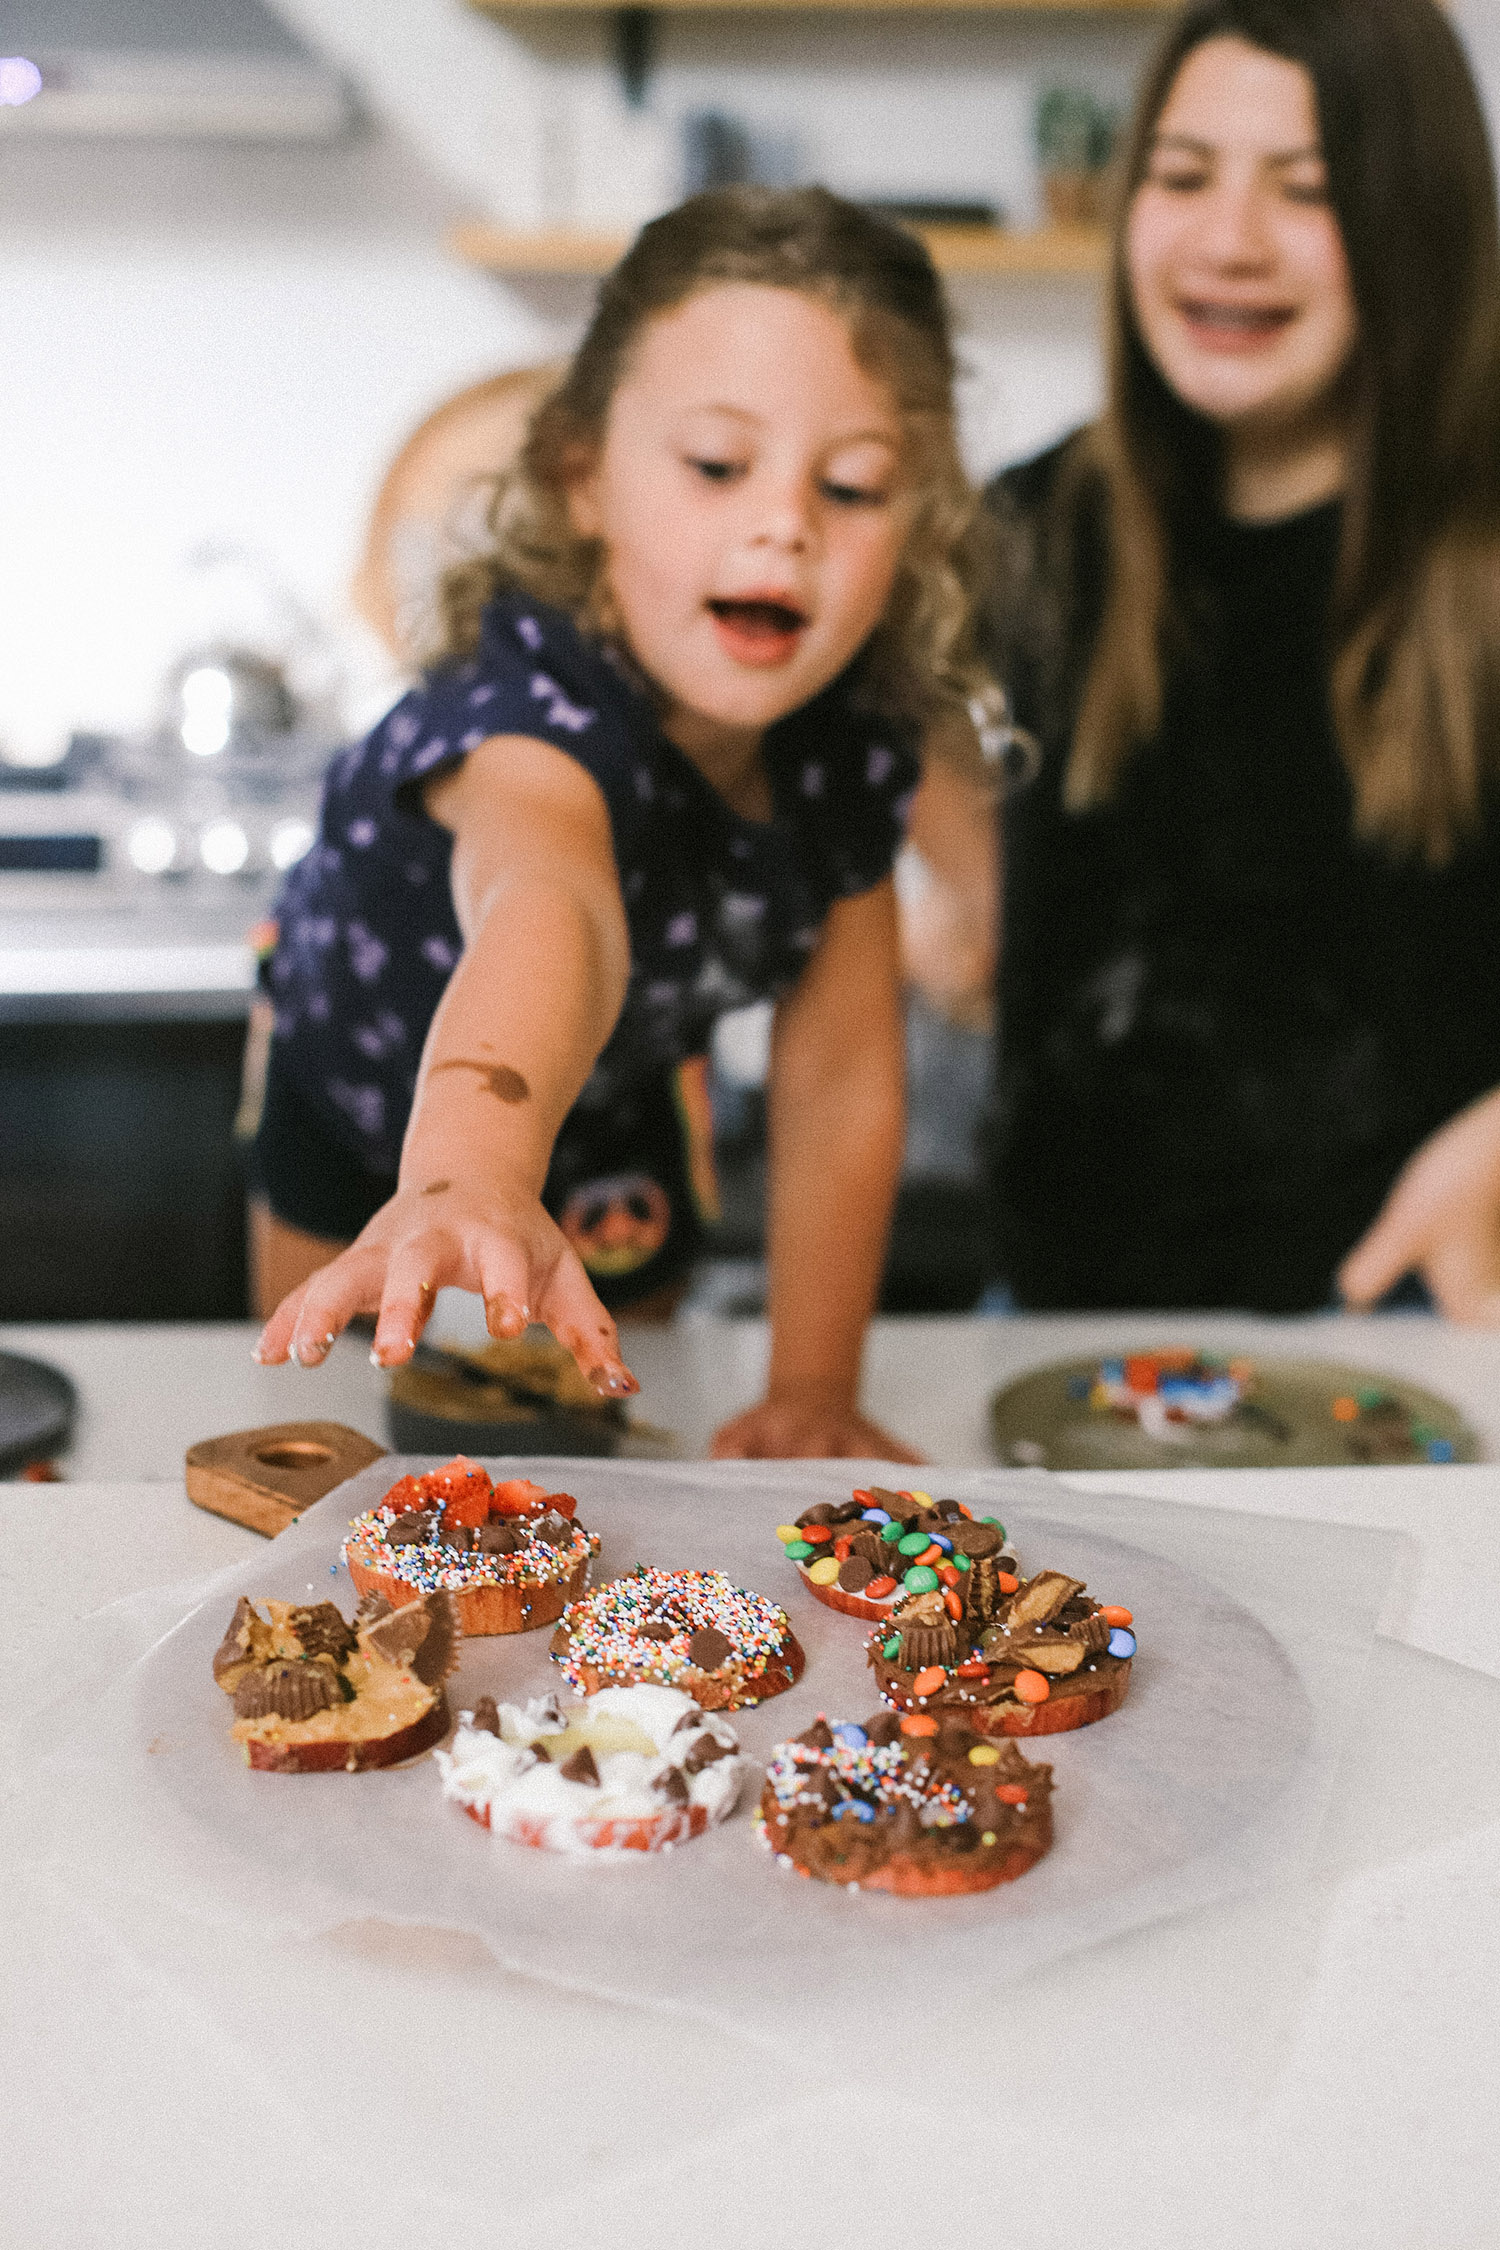 Easy snack ideas for a healthy sweet snacktivity for kids! Apple Donut fun recipe for kids from top Florida blogger Tabitha Blue of Fresh Mommy Blog | Apple Donuts by popular Florida motherhood blog, Fresh Mommy Blog: image of a young girl reaching for a plate of apple slices topped with various toppings like peanut butter, peanut butter cups, sprinkles, chocolate chips, and marshmallow fluff.